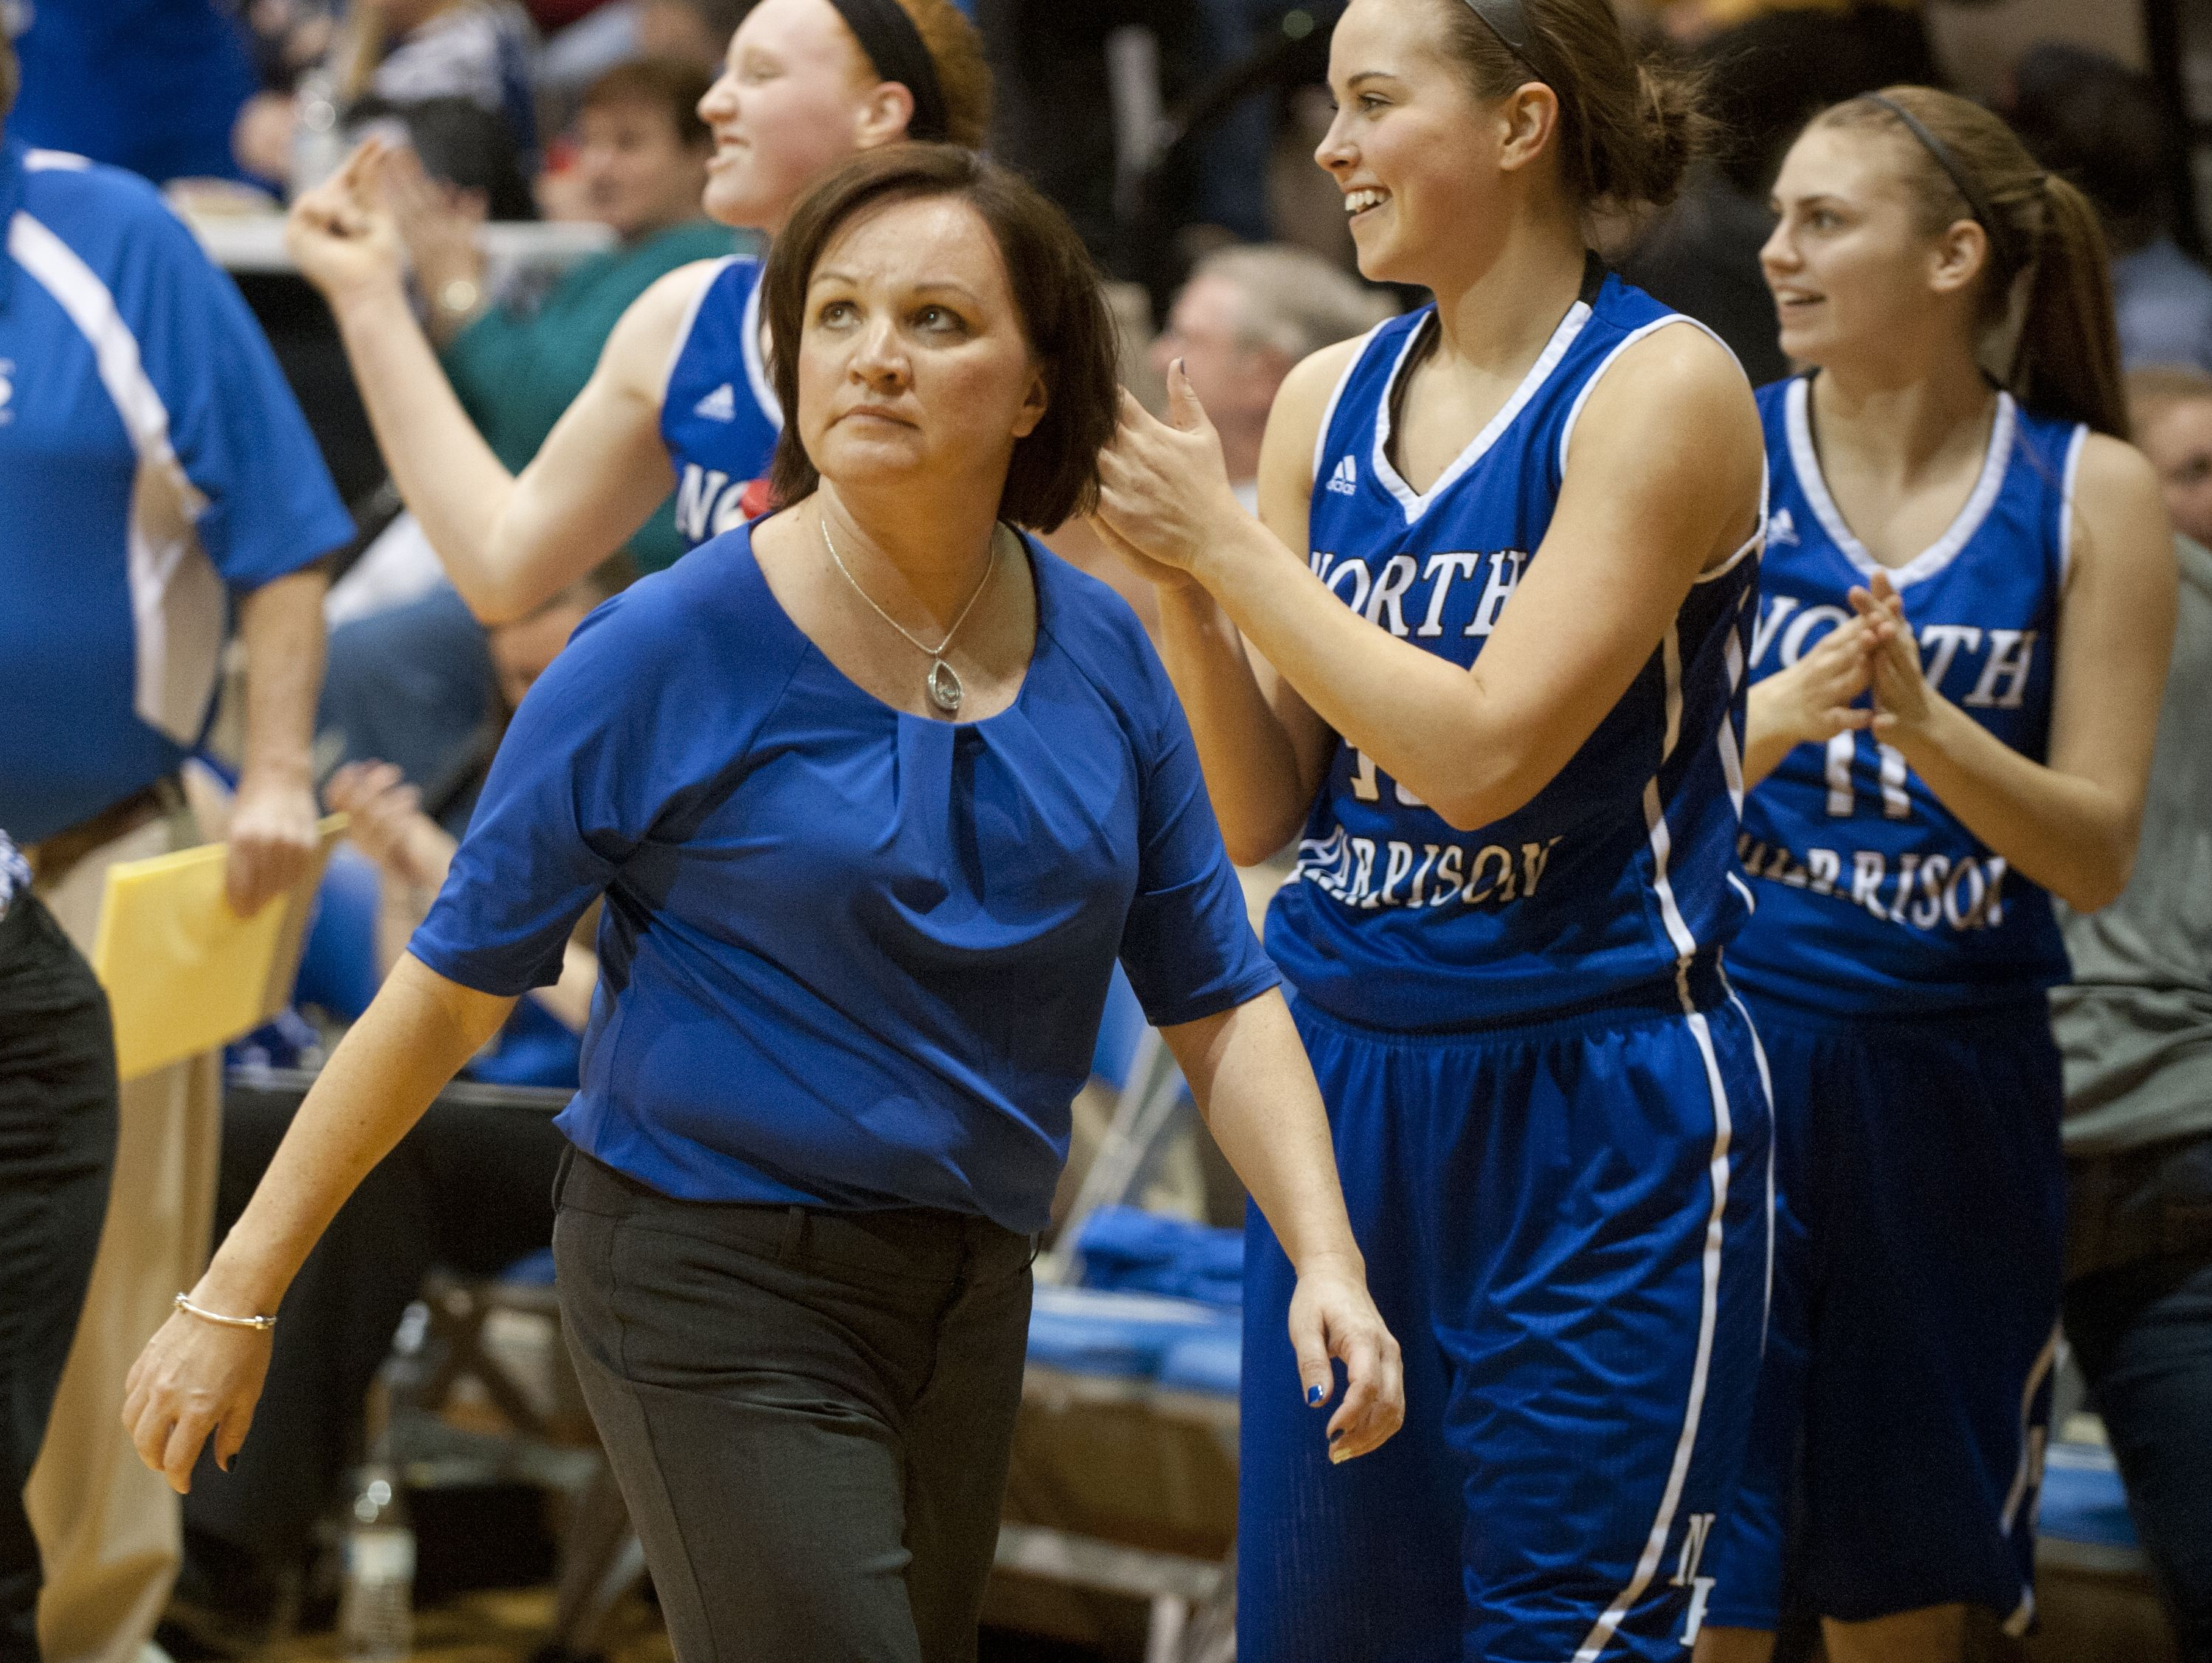 North Harrison coach Missy Voyles looks up at the clock in the closing seconds of her 200th win.